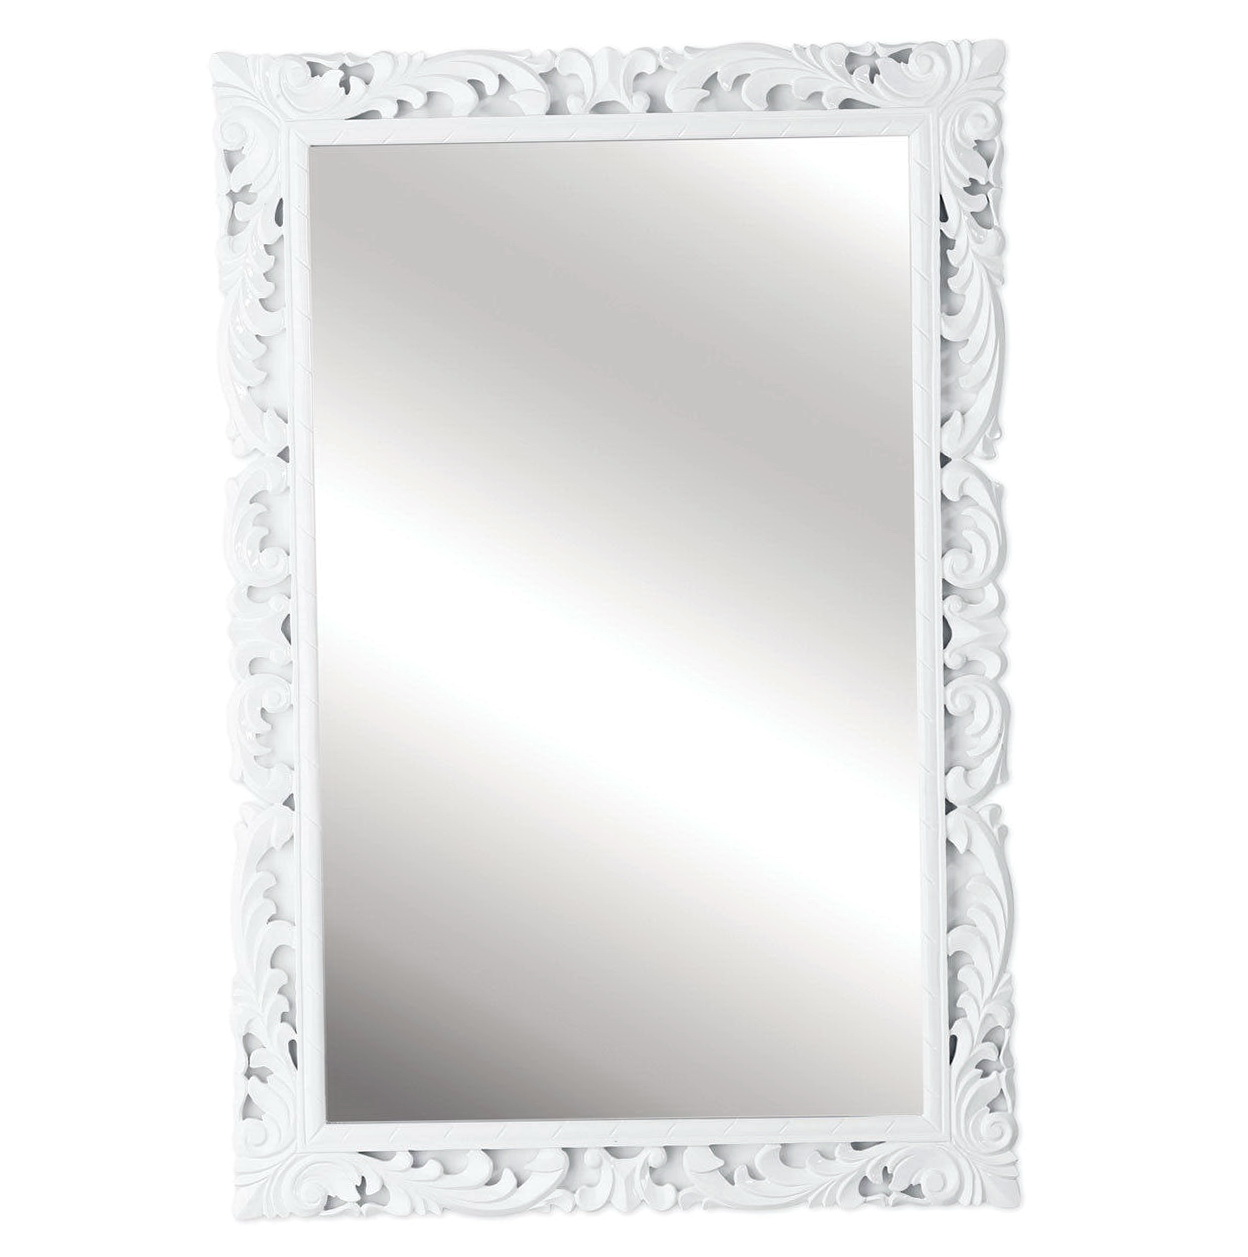 High gloss white framed mirrors home design ideas for White framed mirror